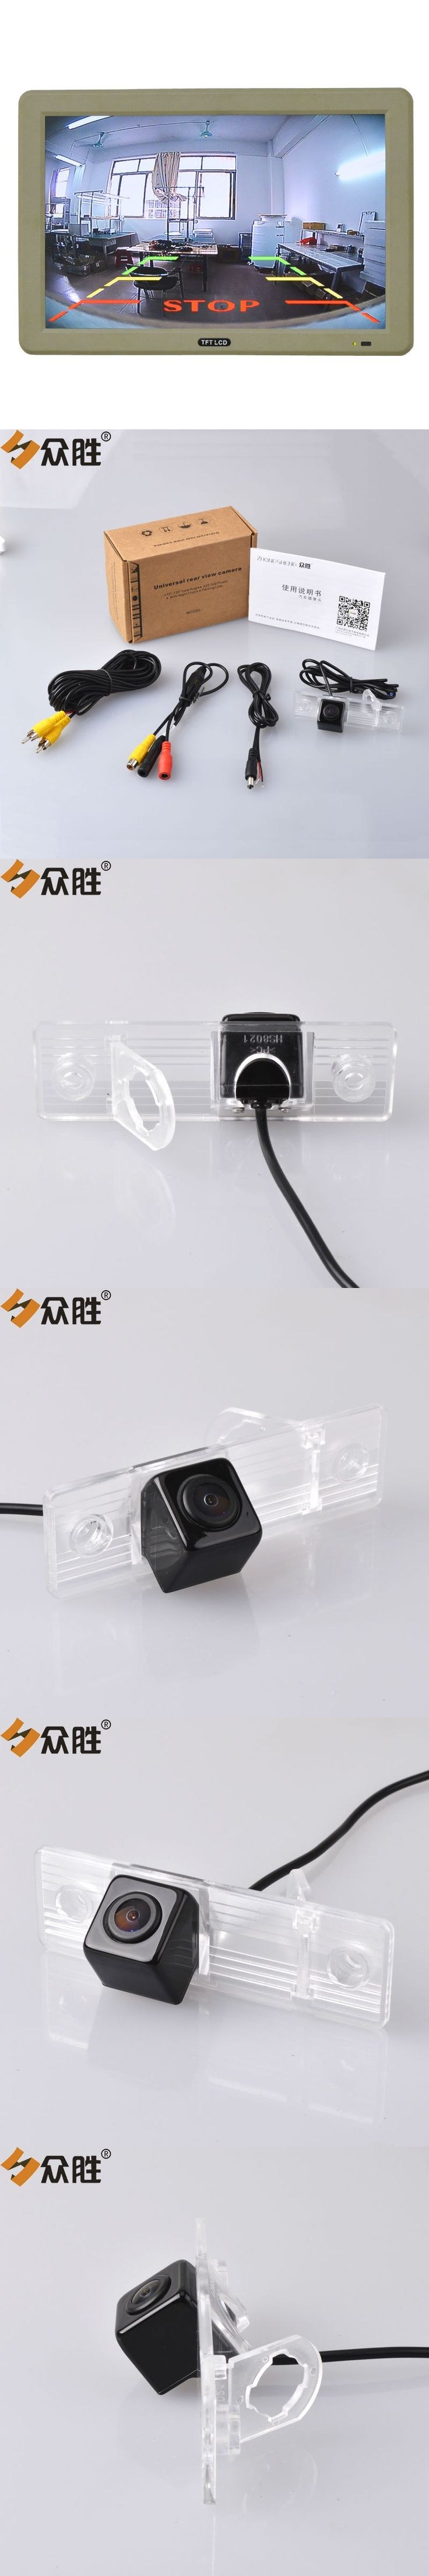 Car Rear View Camera for Chevrolet Cruze Captiva Car Reverse Parking Assistance Rearview Camera Auto Backup Camera HS8021SMT